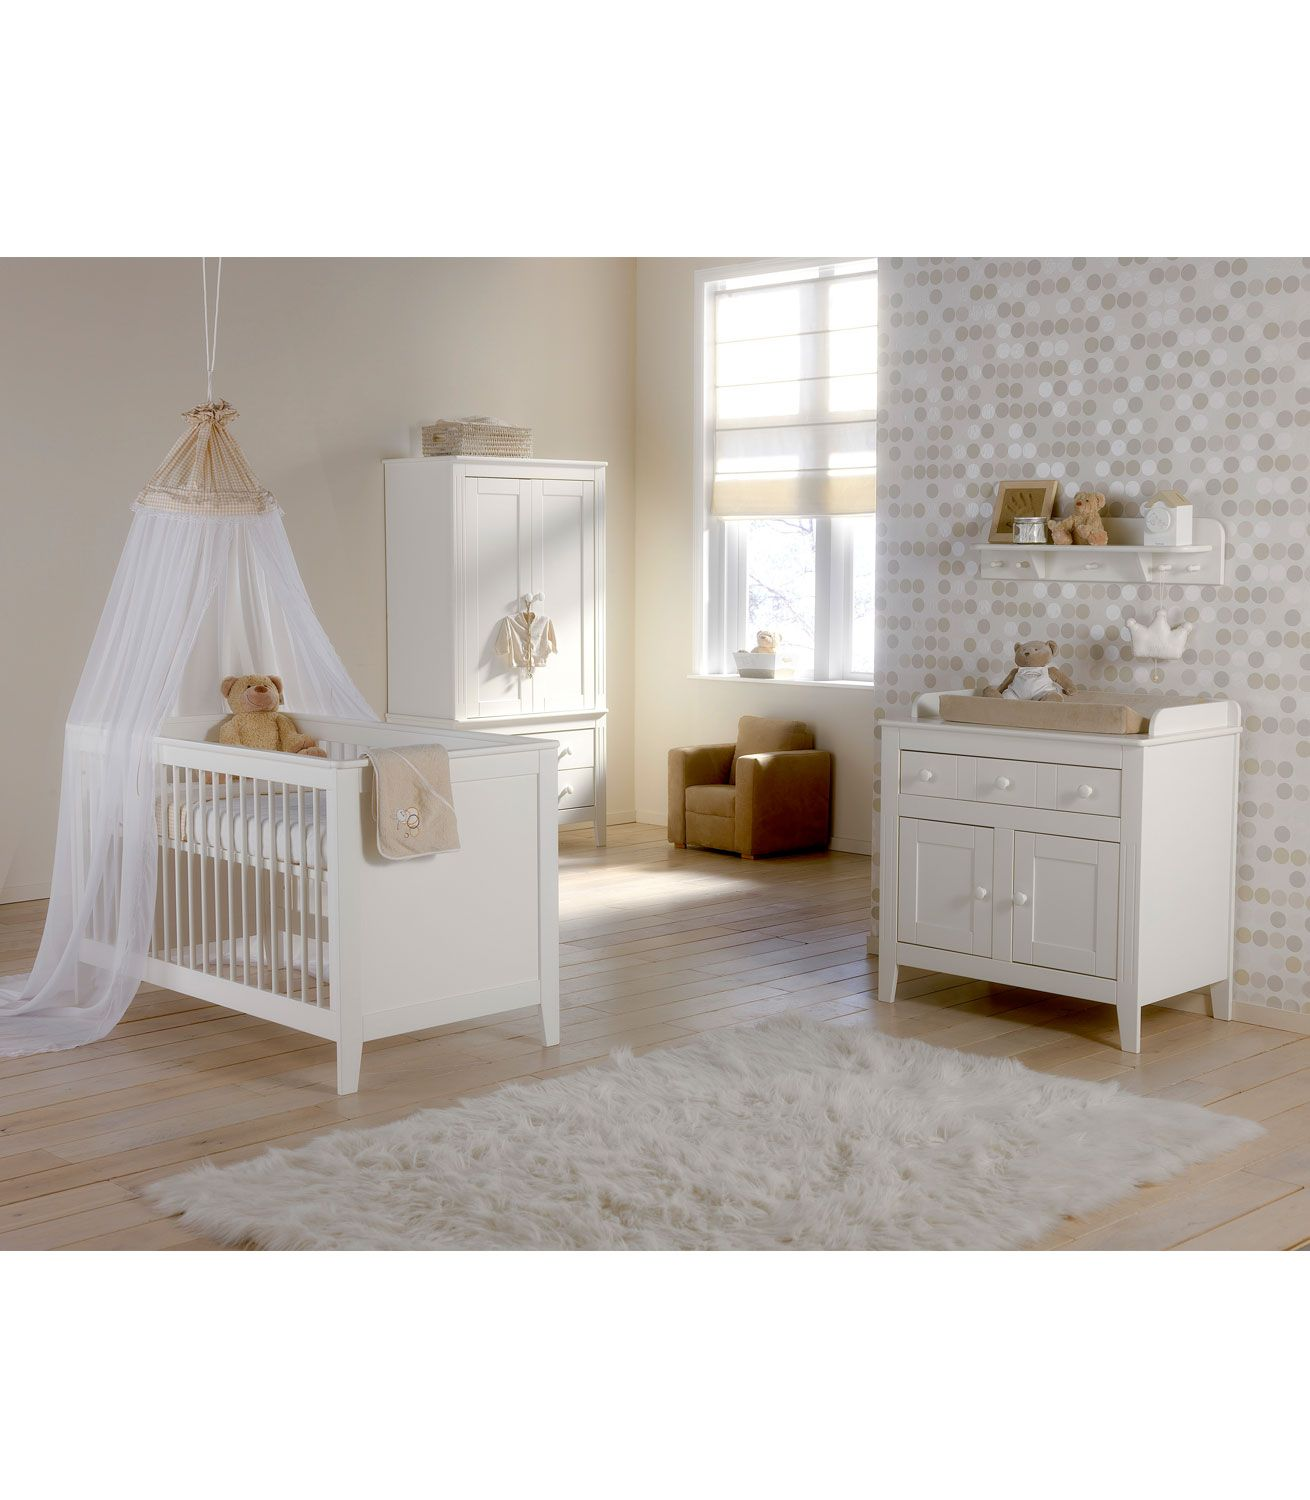 Buy your Europe Baby Montana Roomset Cotbed Chest & Wardrobe